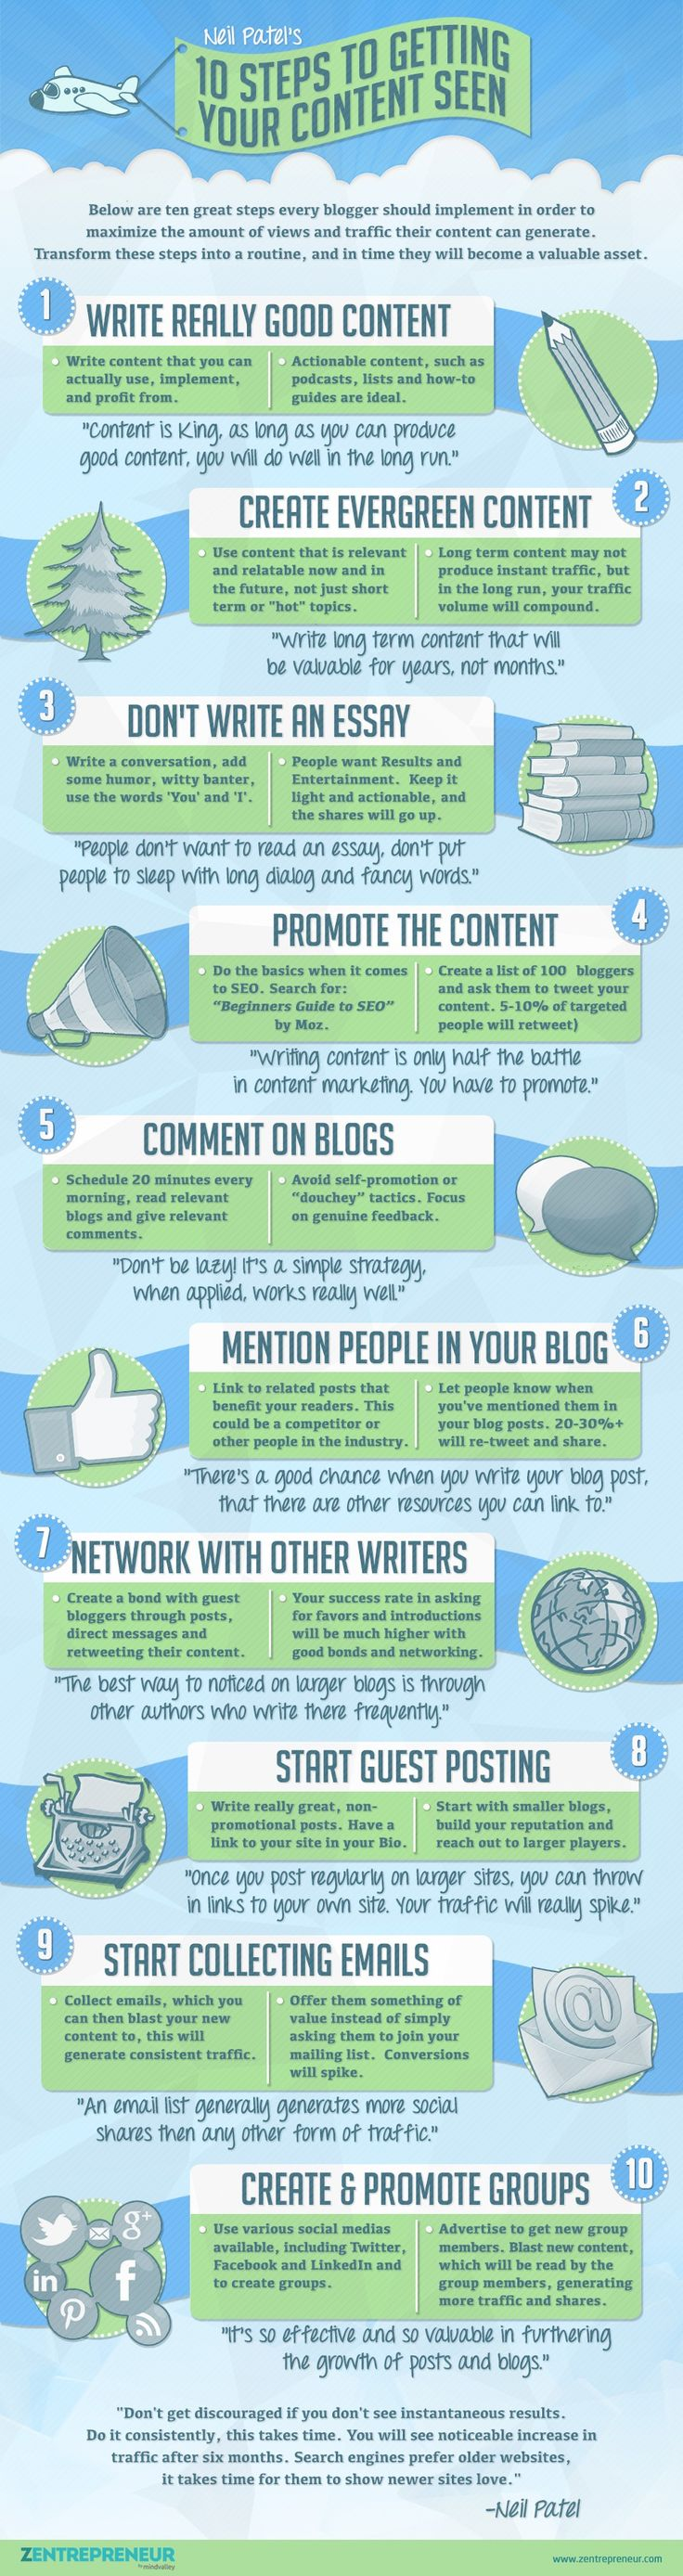 10 simple steps to getting your #blog content seen